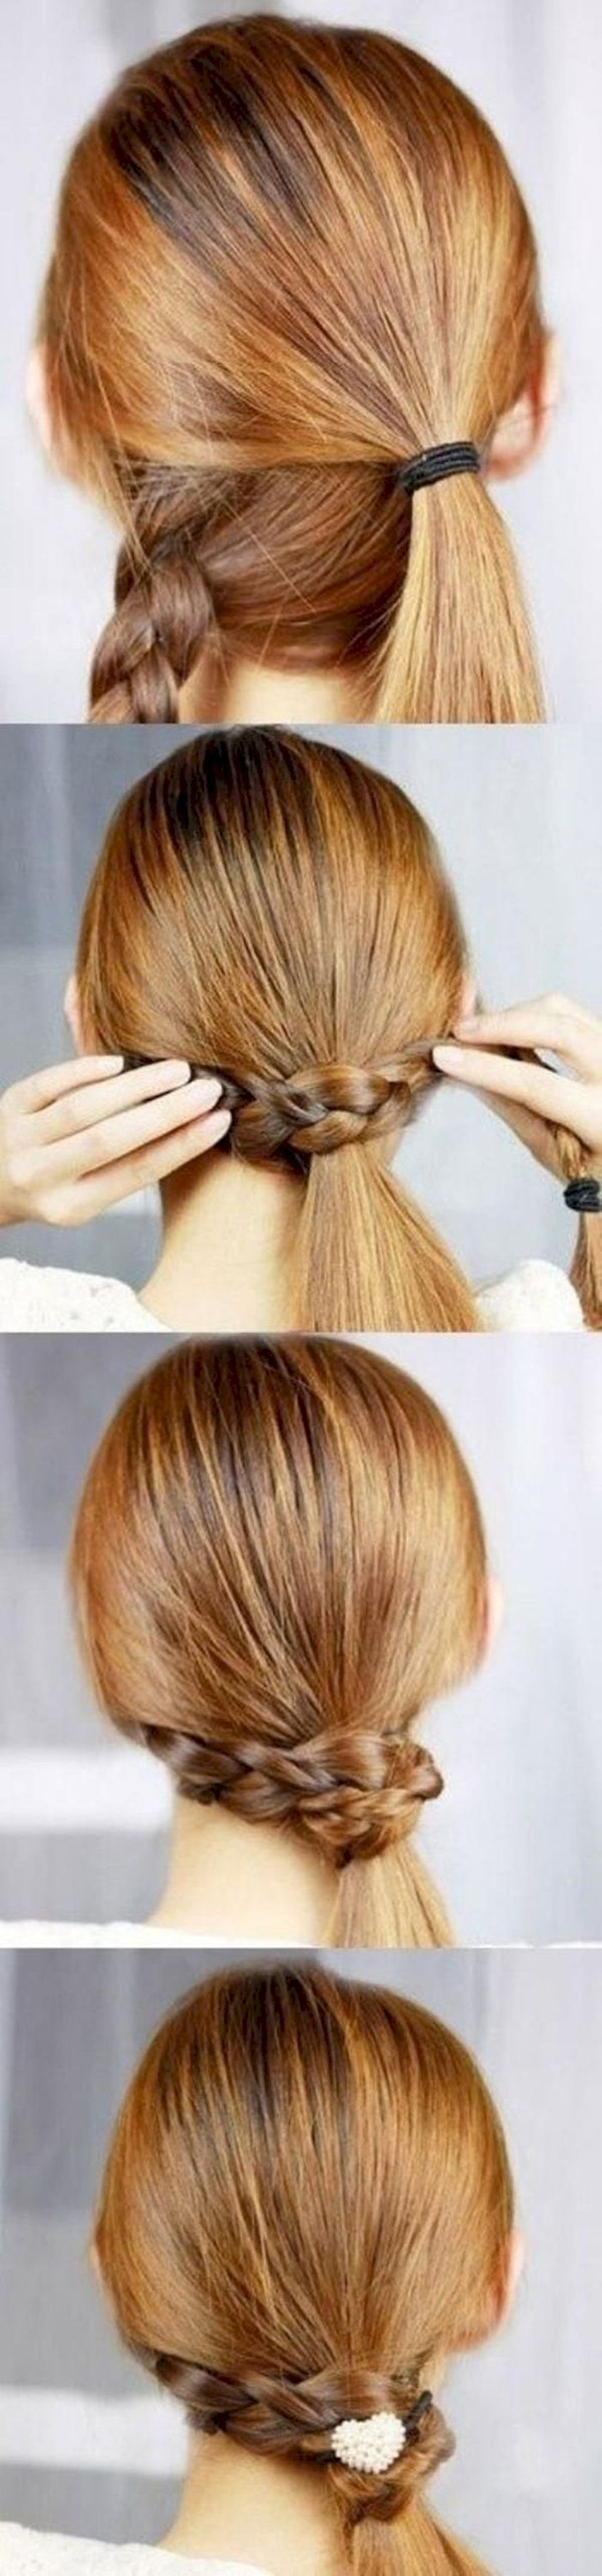 easy summer hairstyle to do yourself hair ideas pinterest